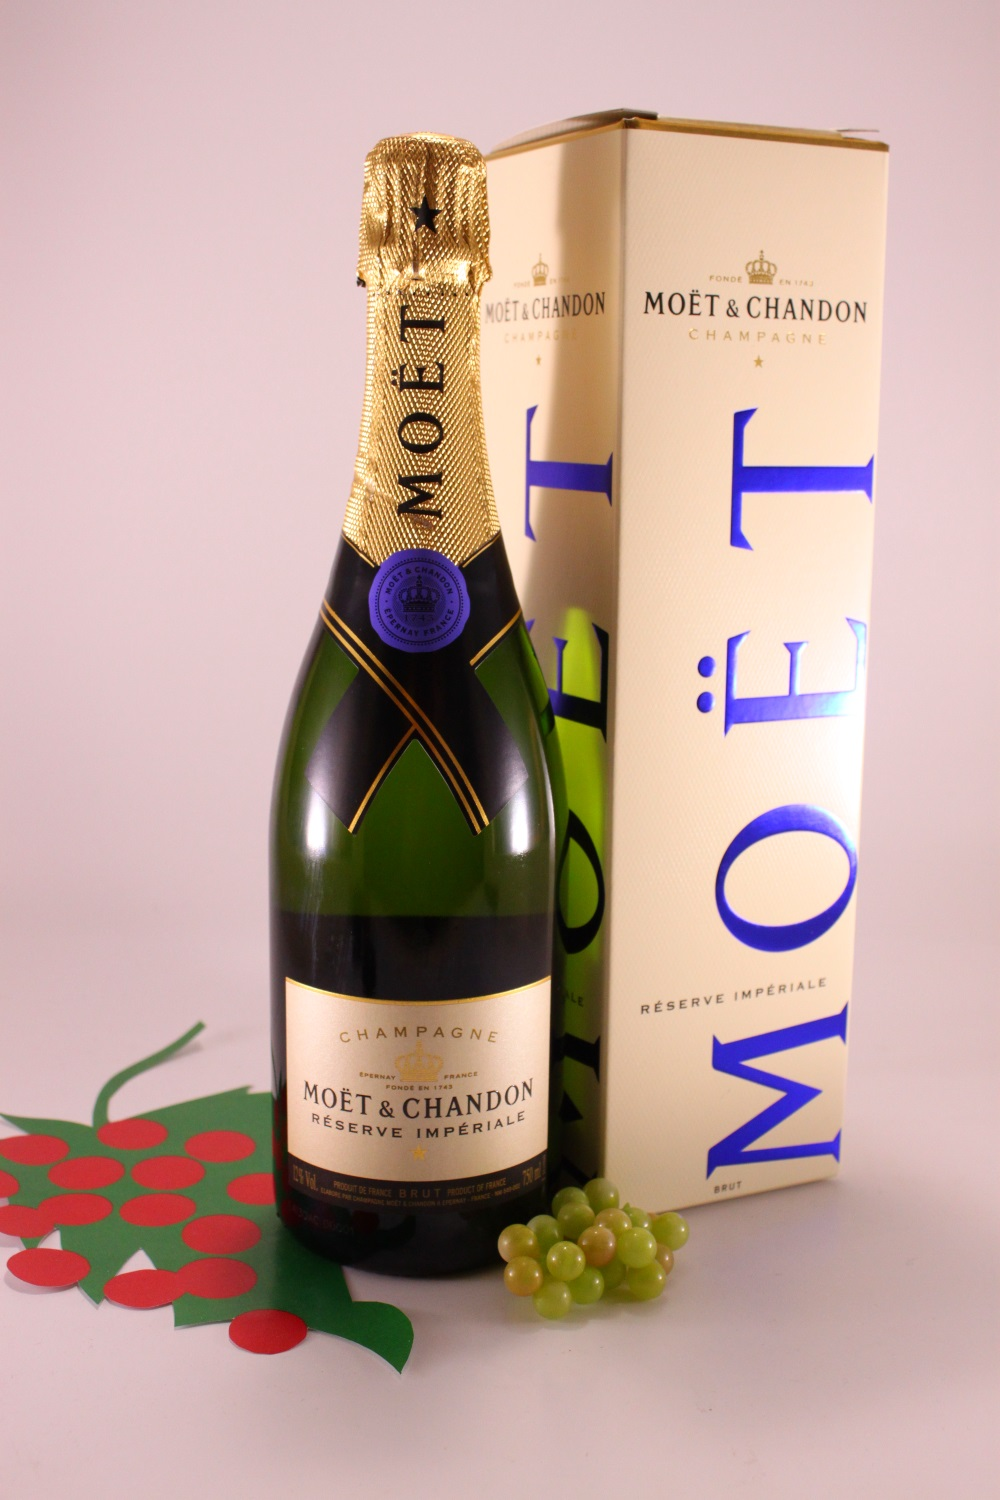 Champagne Moet & Chandon Reserve Imperiale Boll. Blu - Moet & Chandon